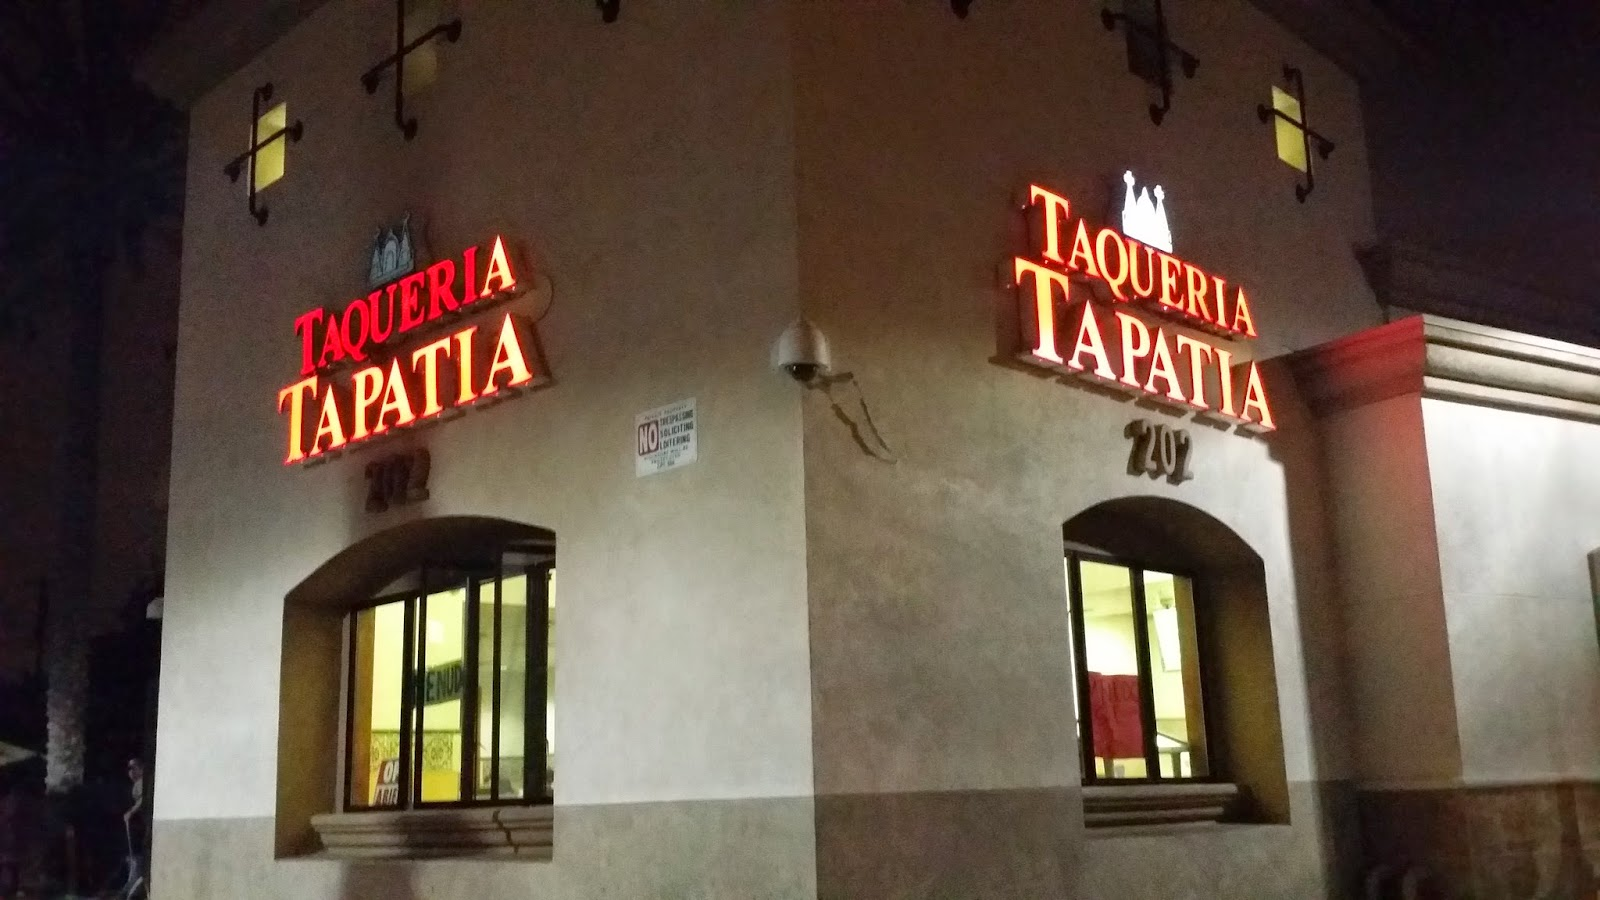 FEELS LIKE TACO TUESDAY EVERYDAY @ TAQUERIA TAPATIA - SANTA ANA